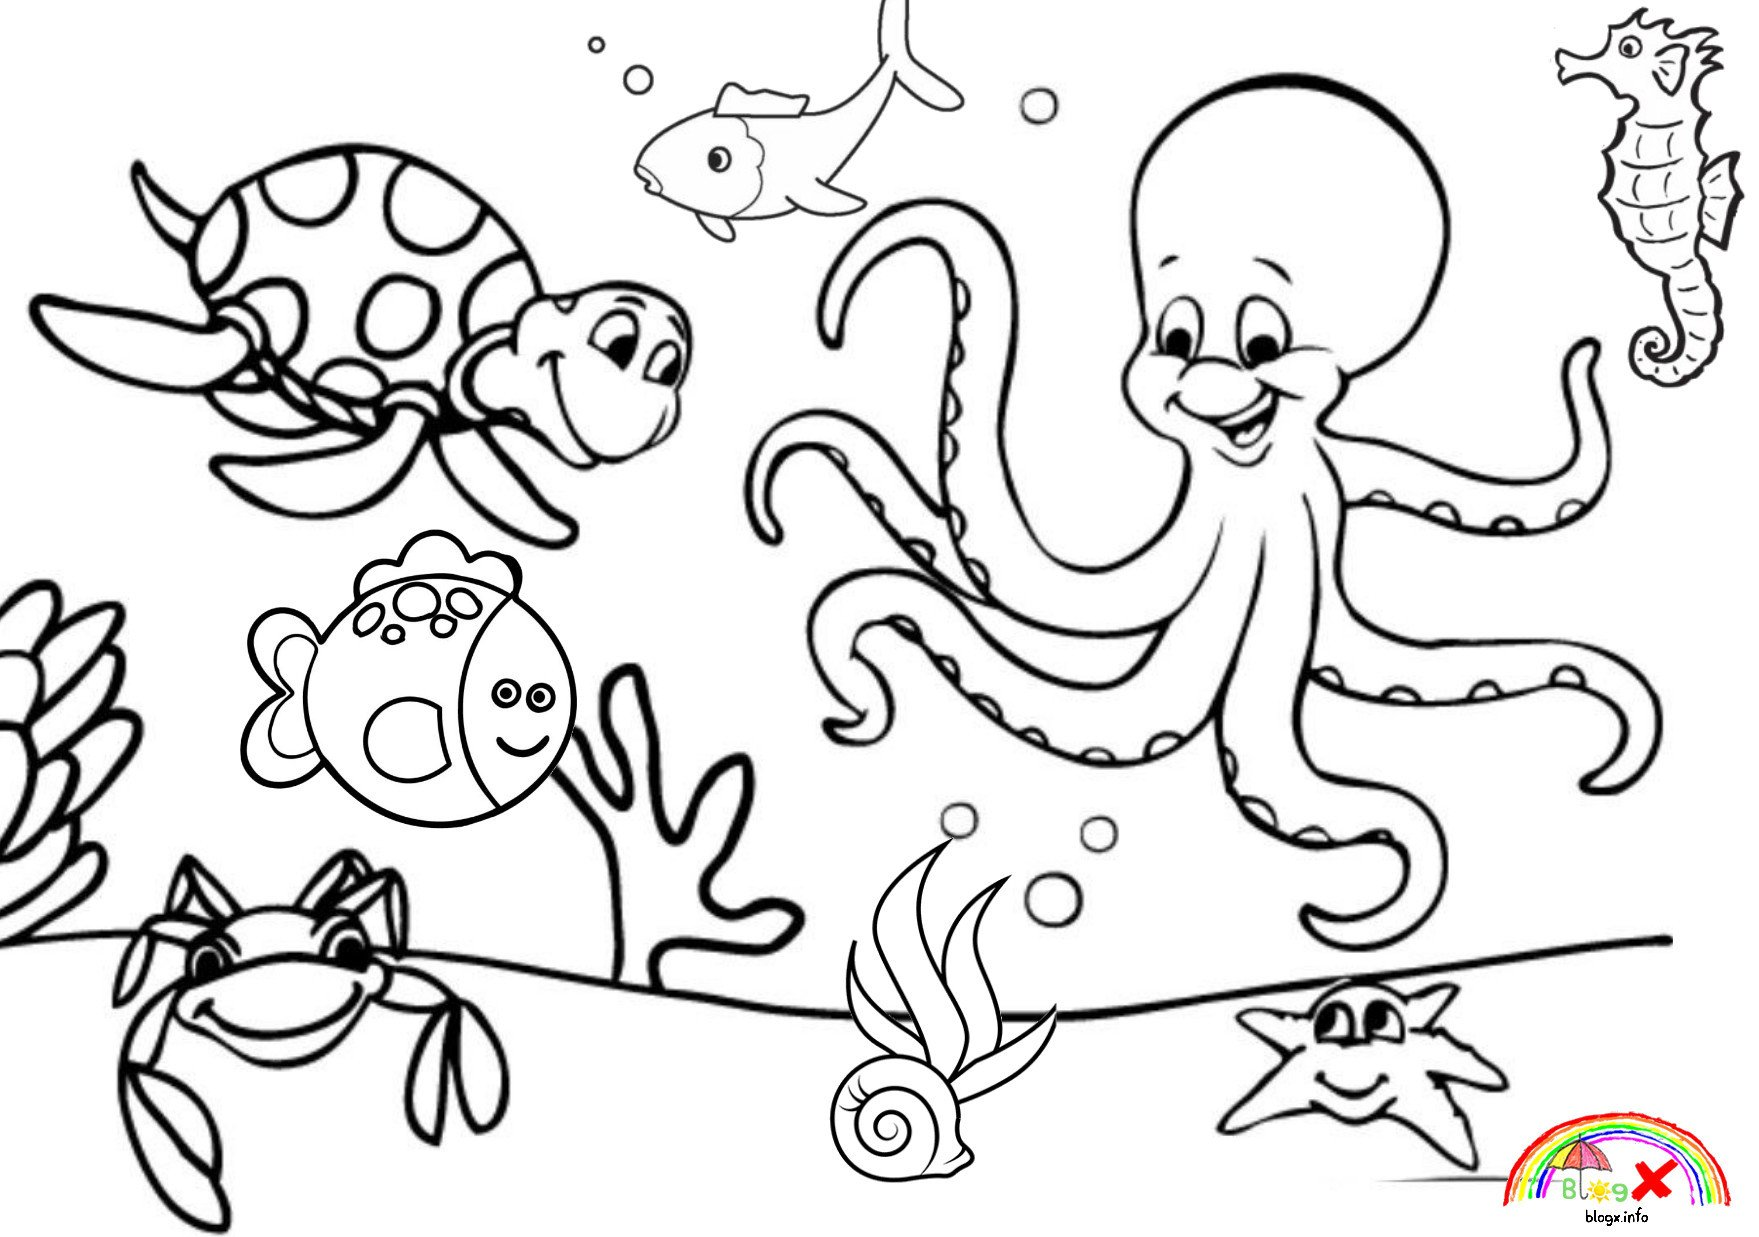 Sea Animal Worksheets 5 Animals Worksheets for Kids Sea Apocalomegaproductions